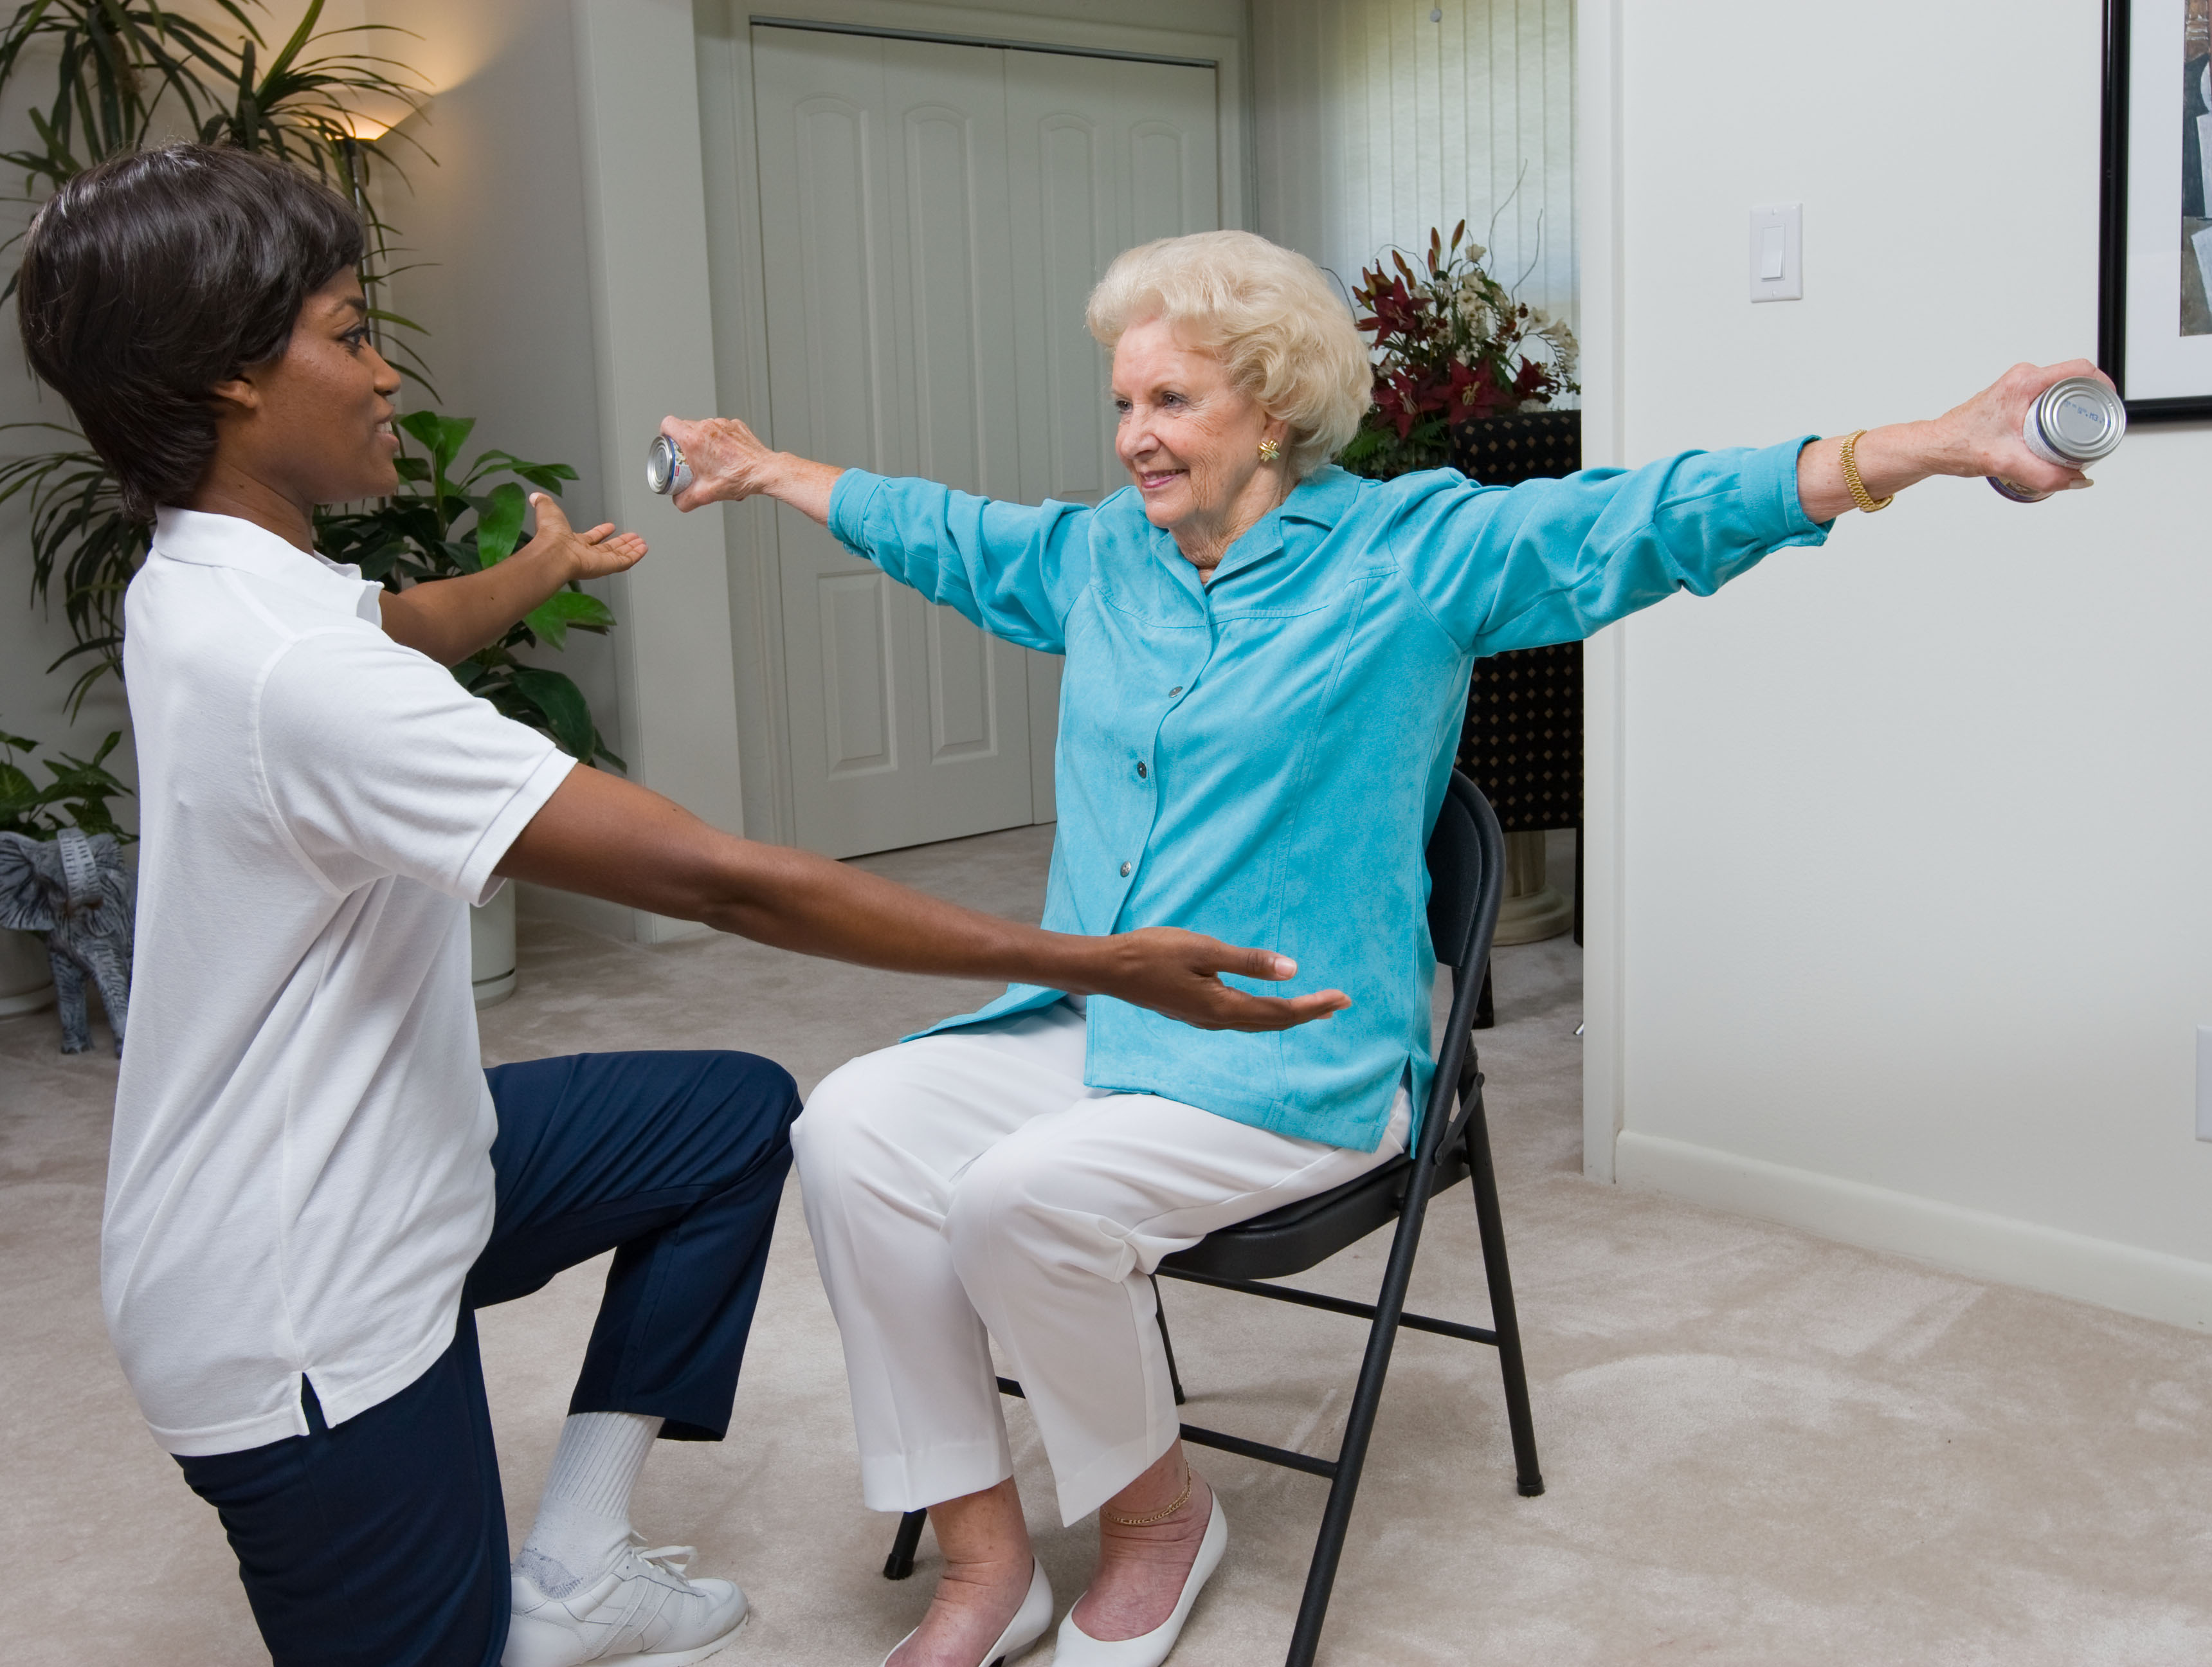 Exercise is even more important for older adults.